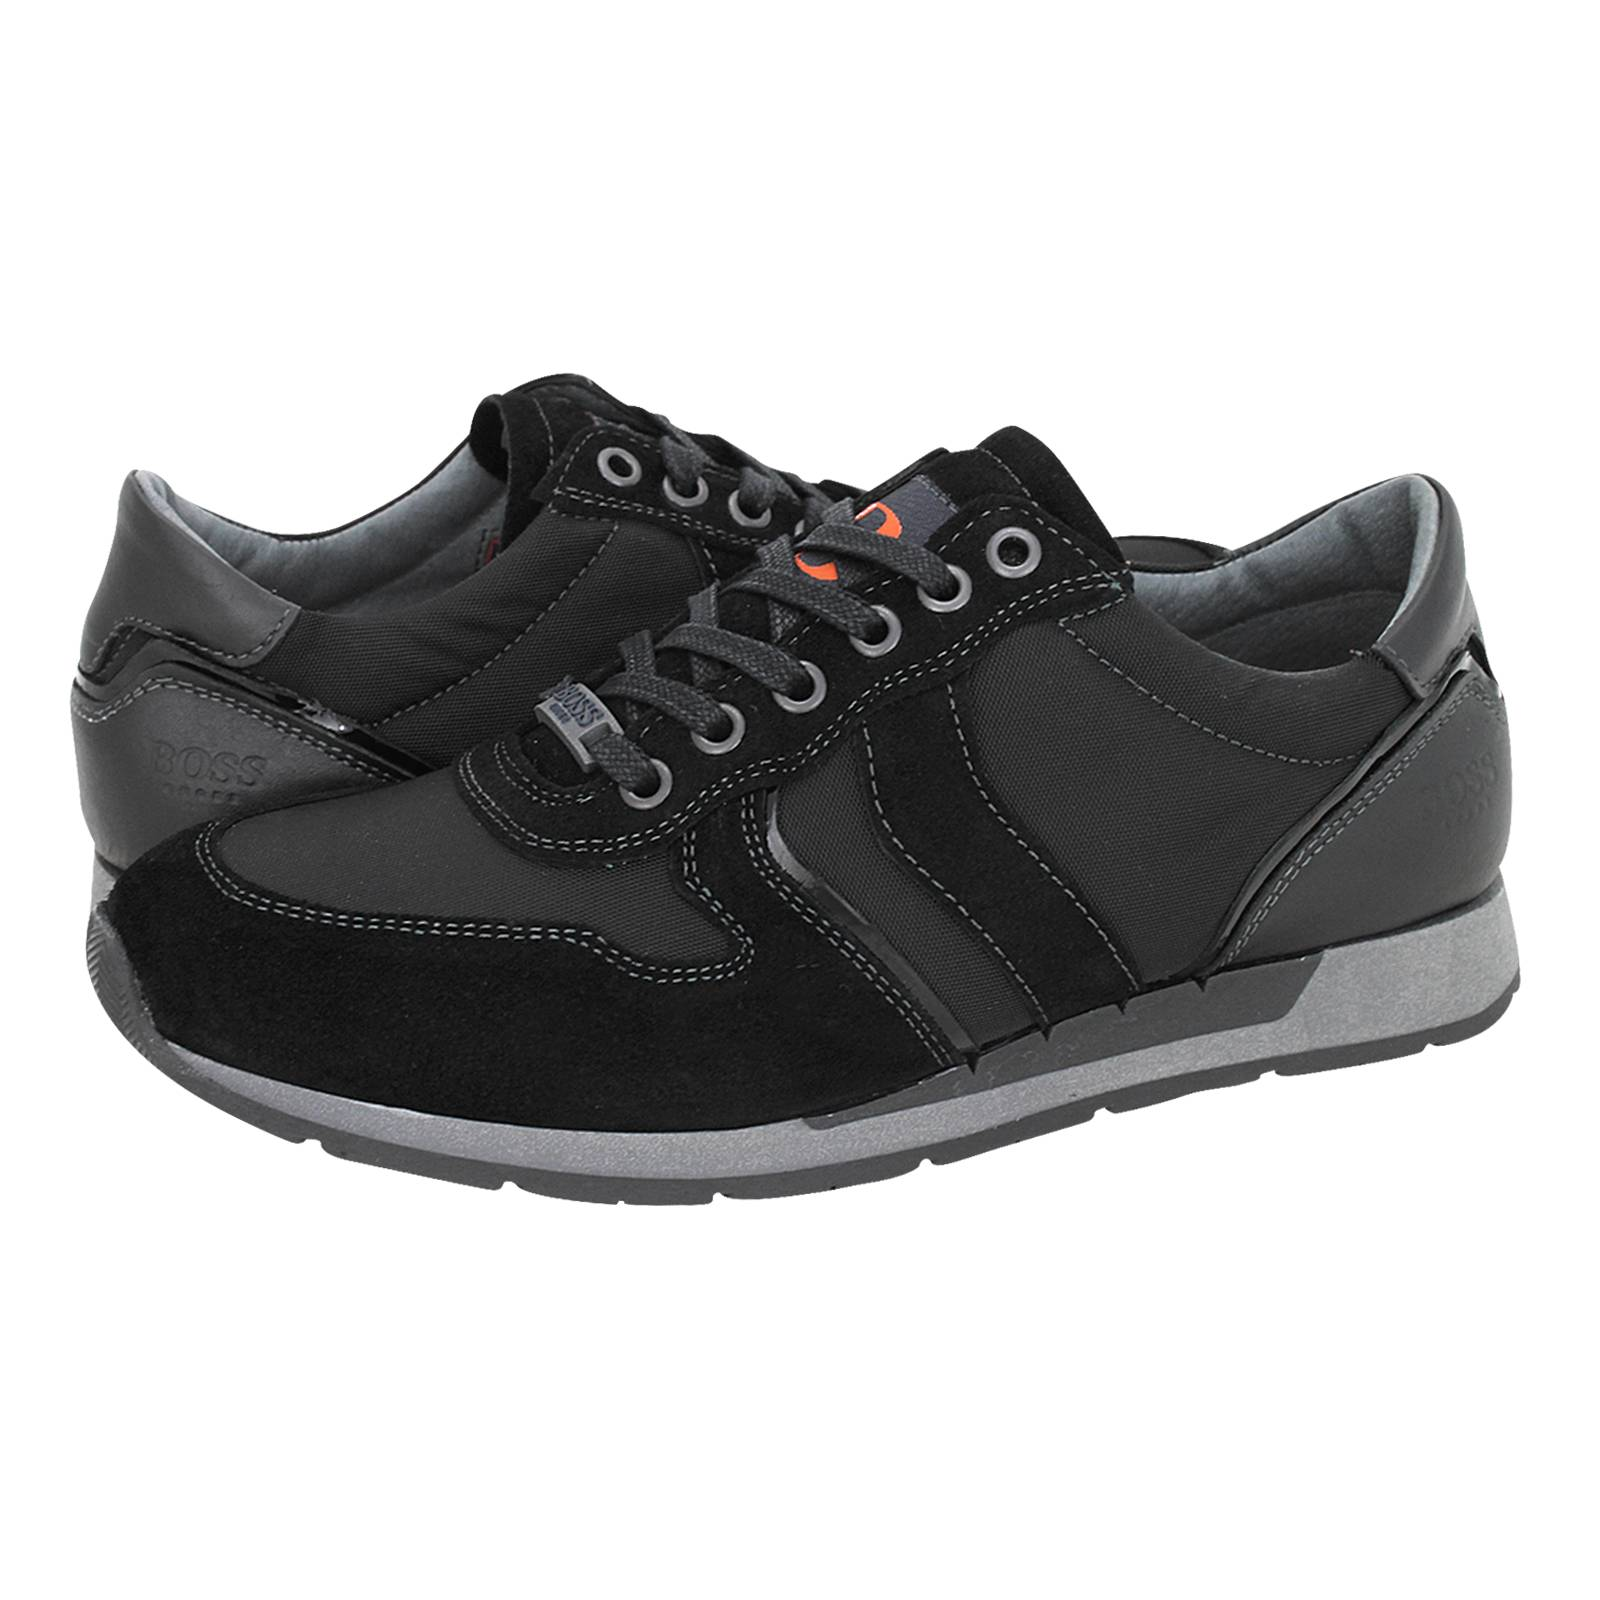 529810ddc Clementon - Boss Men's casual shoes made of fabric, suede and ...